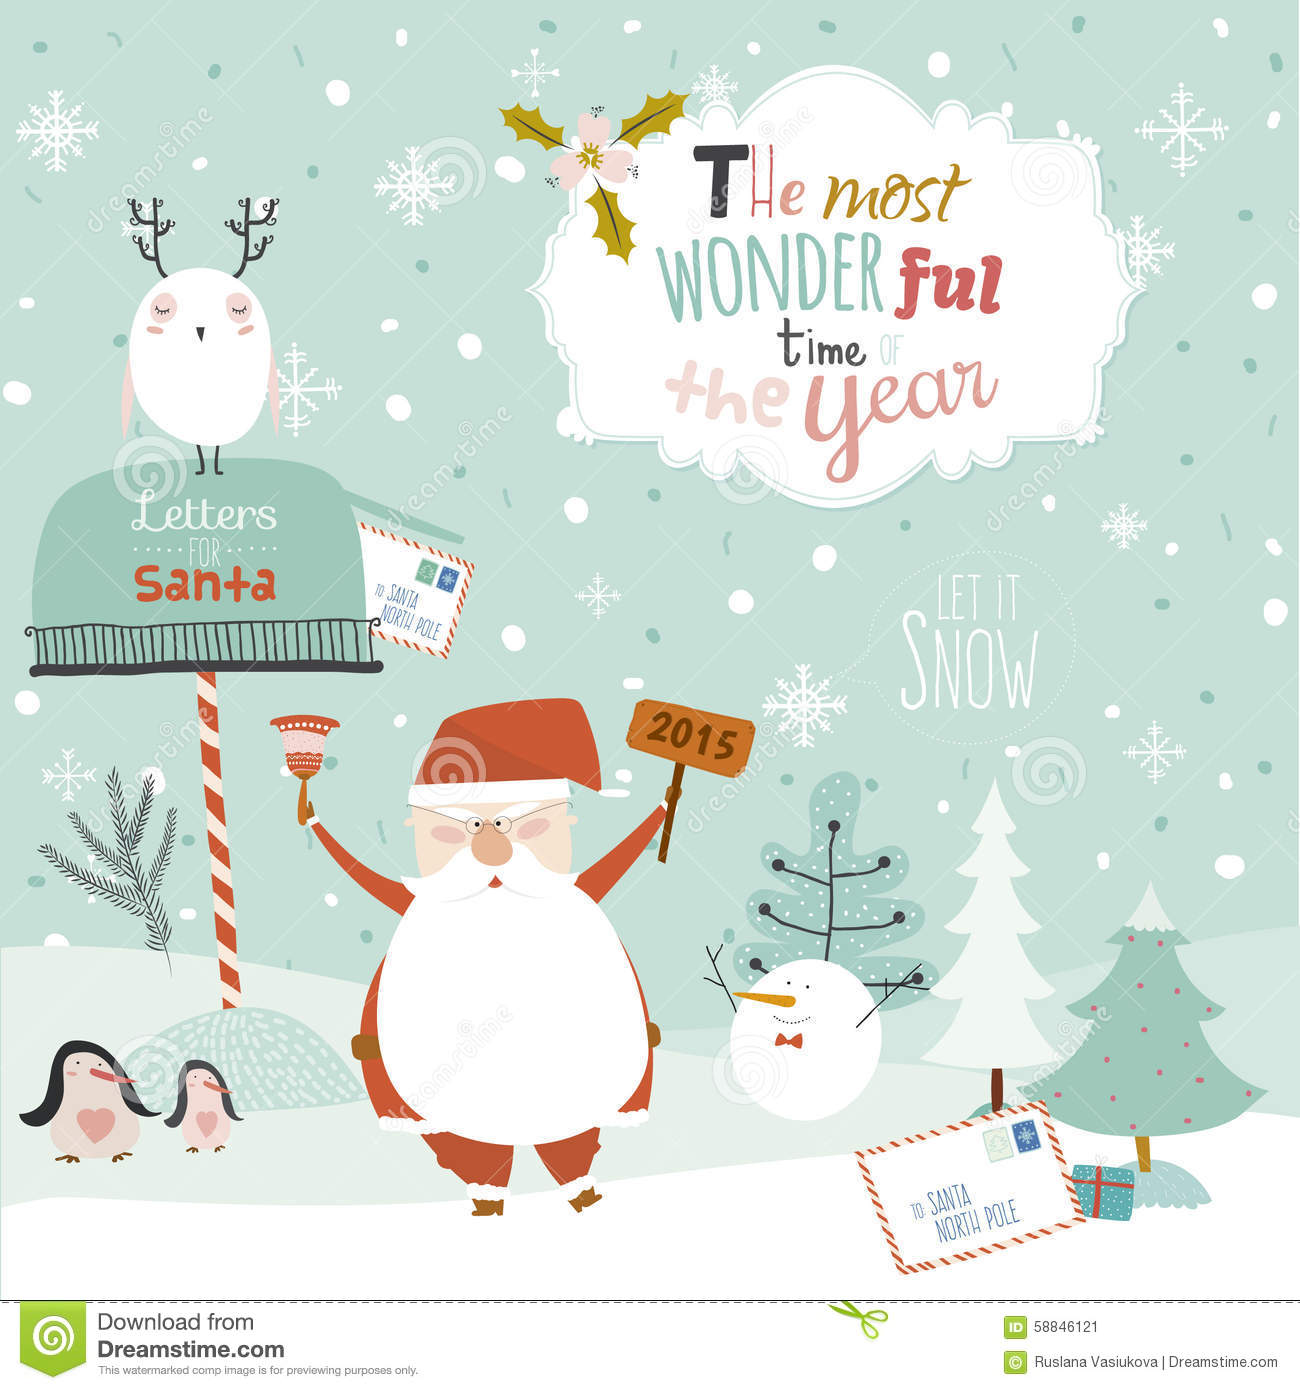 Merry Christmas Illustration: Merry Christmas And Happy New Year Illustration Stock